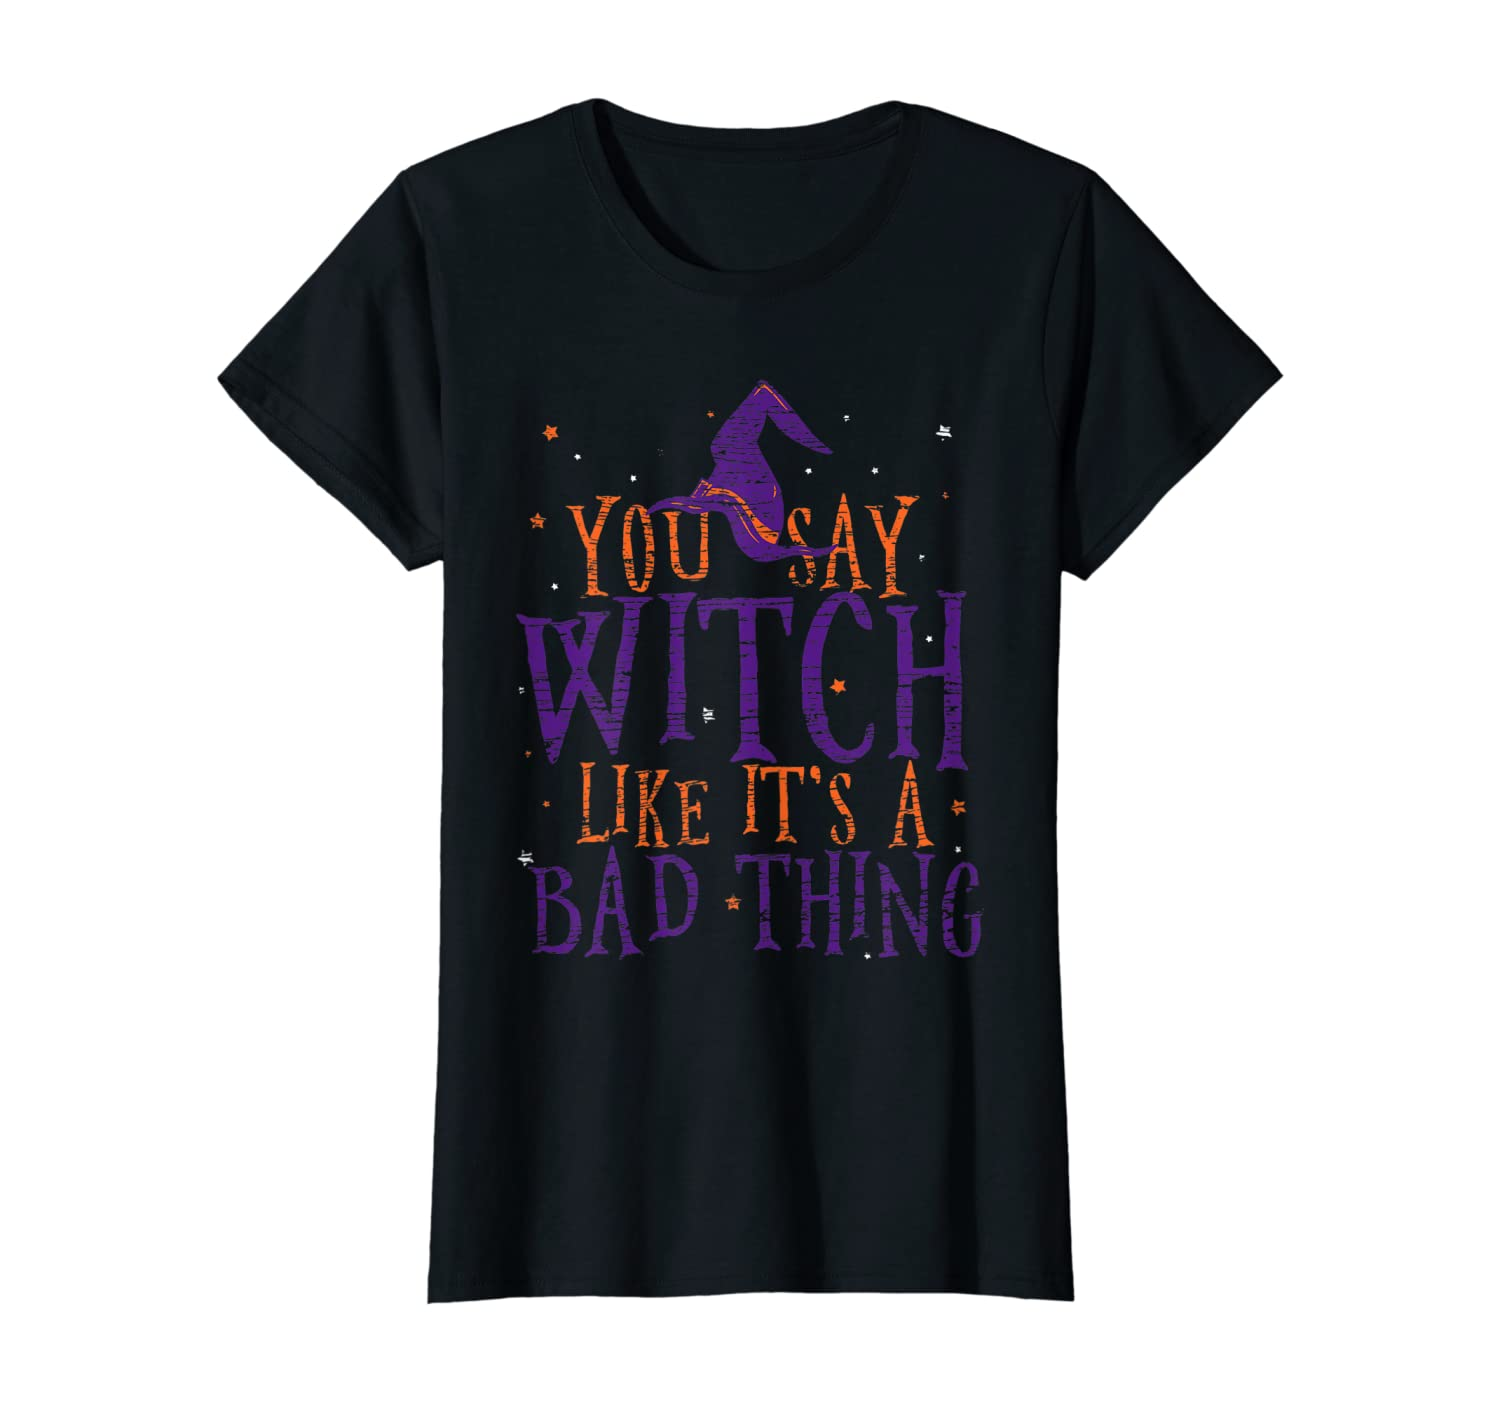 Womens You say Witch Like It's A Bad Thing Shirt Halloween T-Shirt T-Shirt